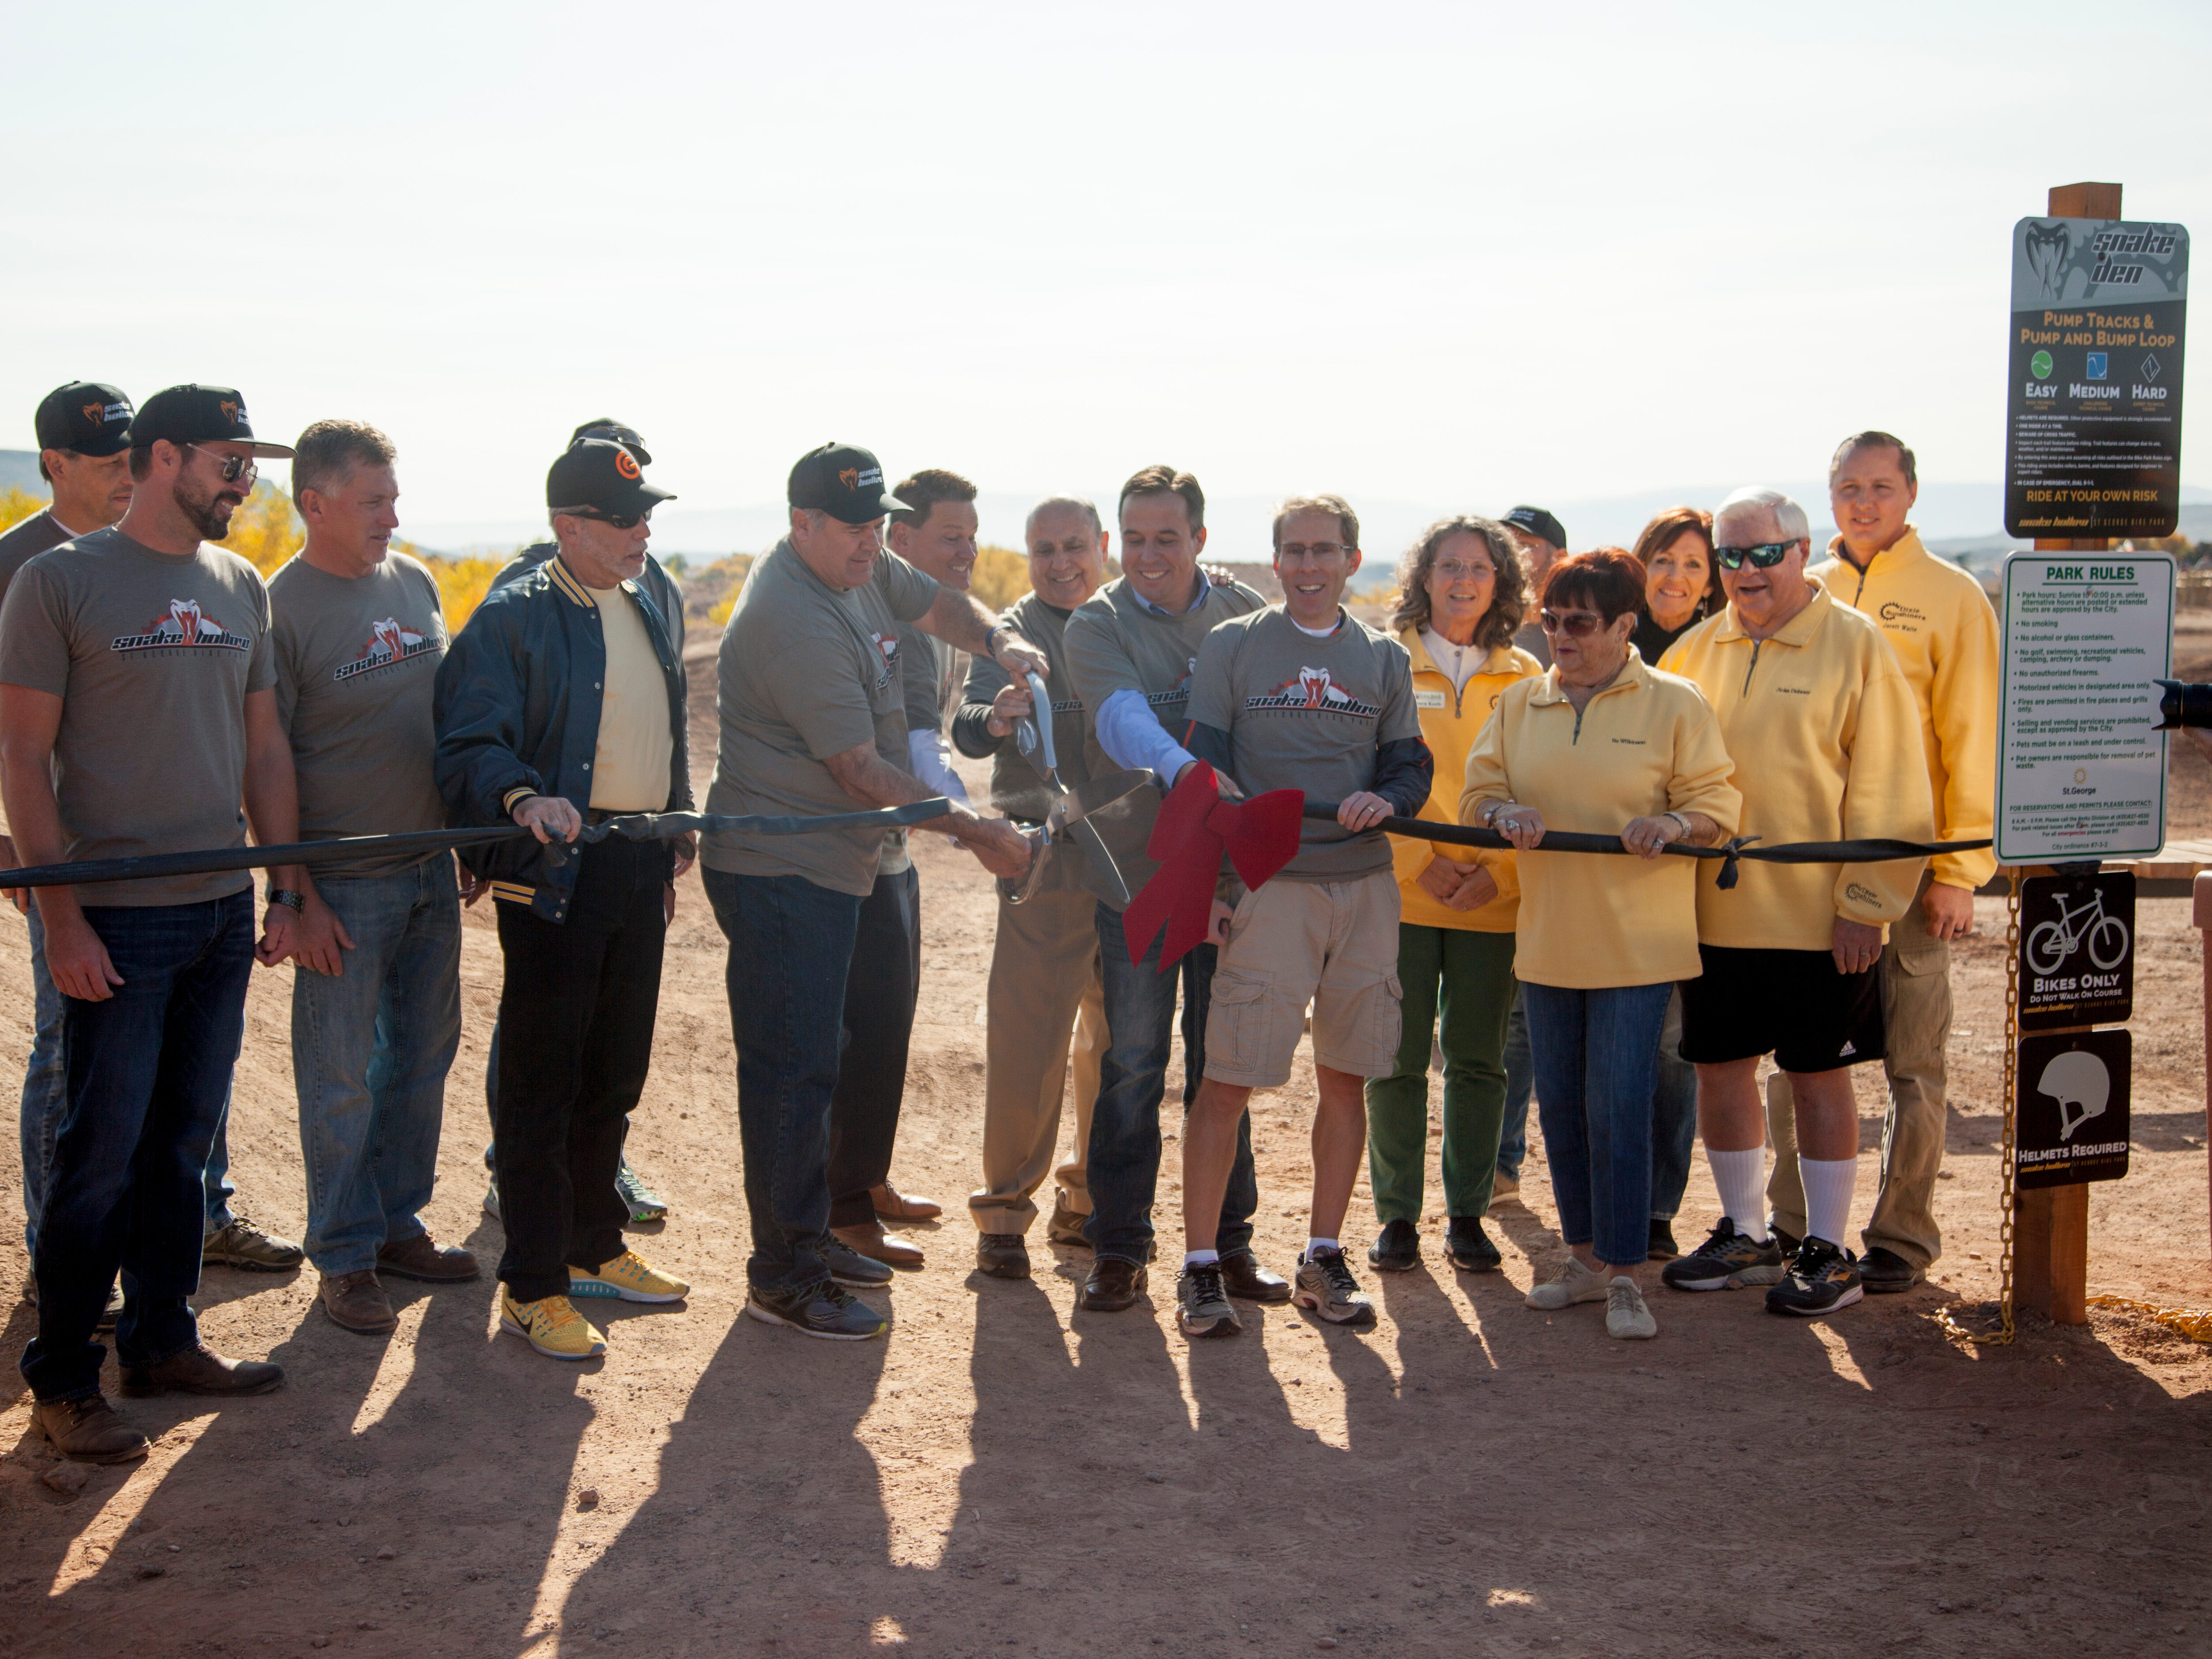 St. George Mayor Jon Pike cuts the ceremonial ribbon, officially opening Snake Hollow Bike Park on Nov. 17, 2018.